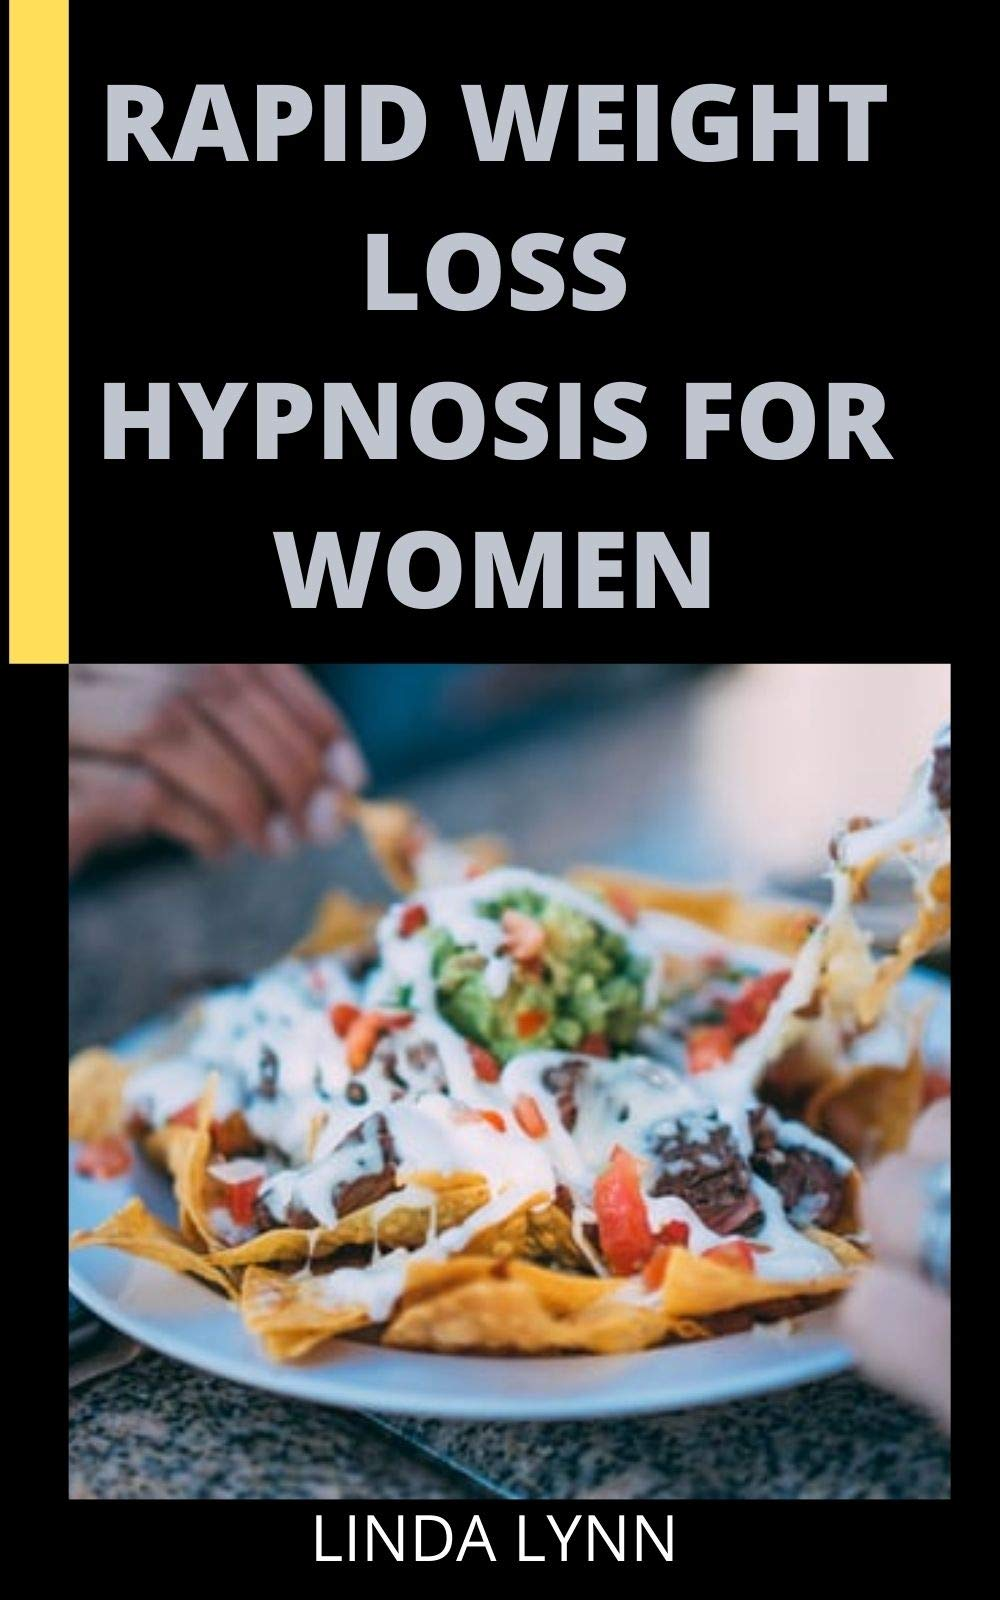 RAPID WEIGHT LOSS HYPNOSIS FOR WOMEN: 40 Recipes Plus Guide to Natural Rapid Weight Loss with Hypnosis and Meditation. Hypnotic Gastric Band, Fat Burn and Calorie Blast with Self-Hypnosis